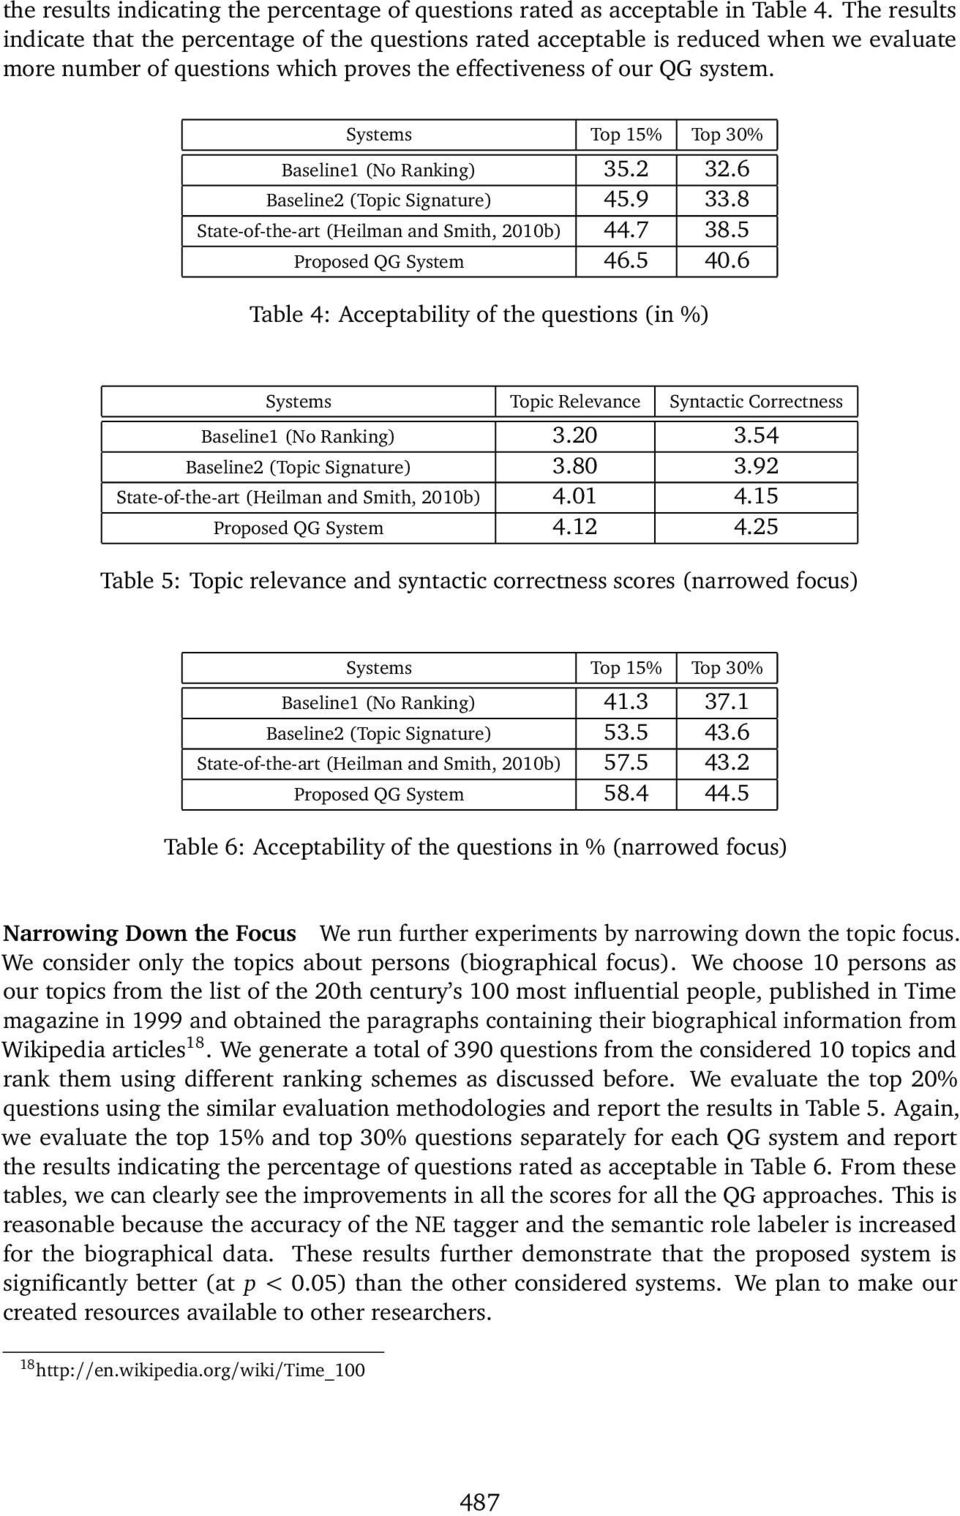 Systems Top 15% Top 30% Baseline1 (No Ranking) 35.2 32.6 Baseline2 (Topic Signature) 45.9 33.8 State-of-the-art (Heilman and Smith, 2010b) 44.7 38.5 Proposed QG System 46.5 40.